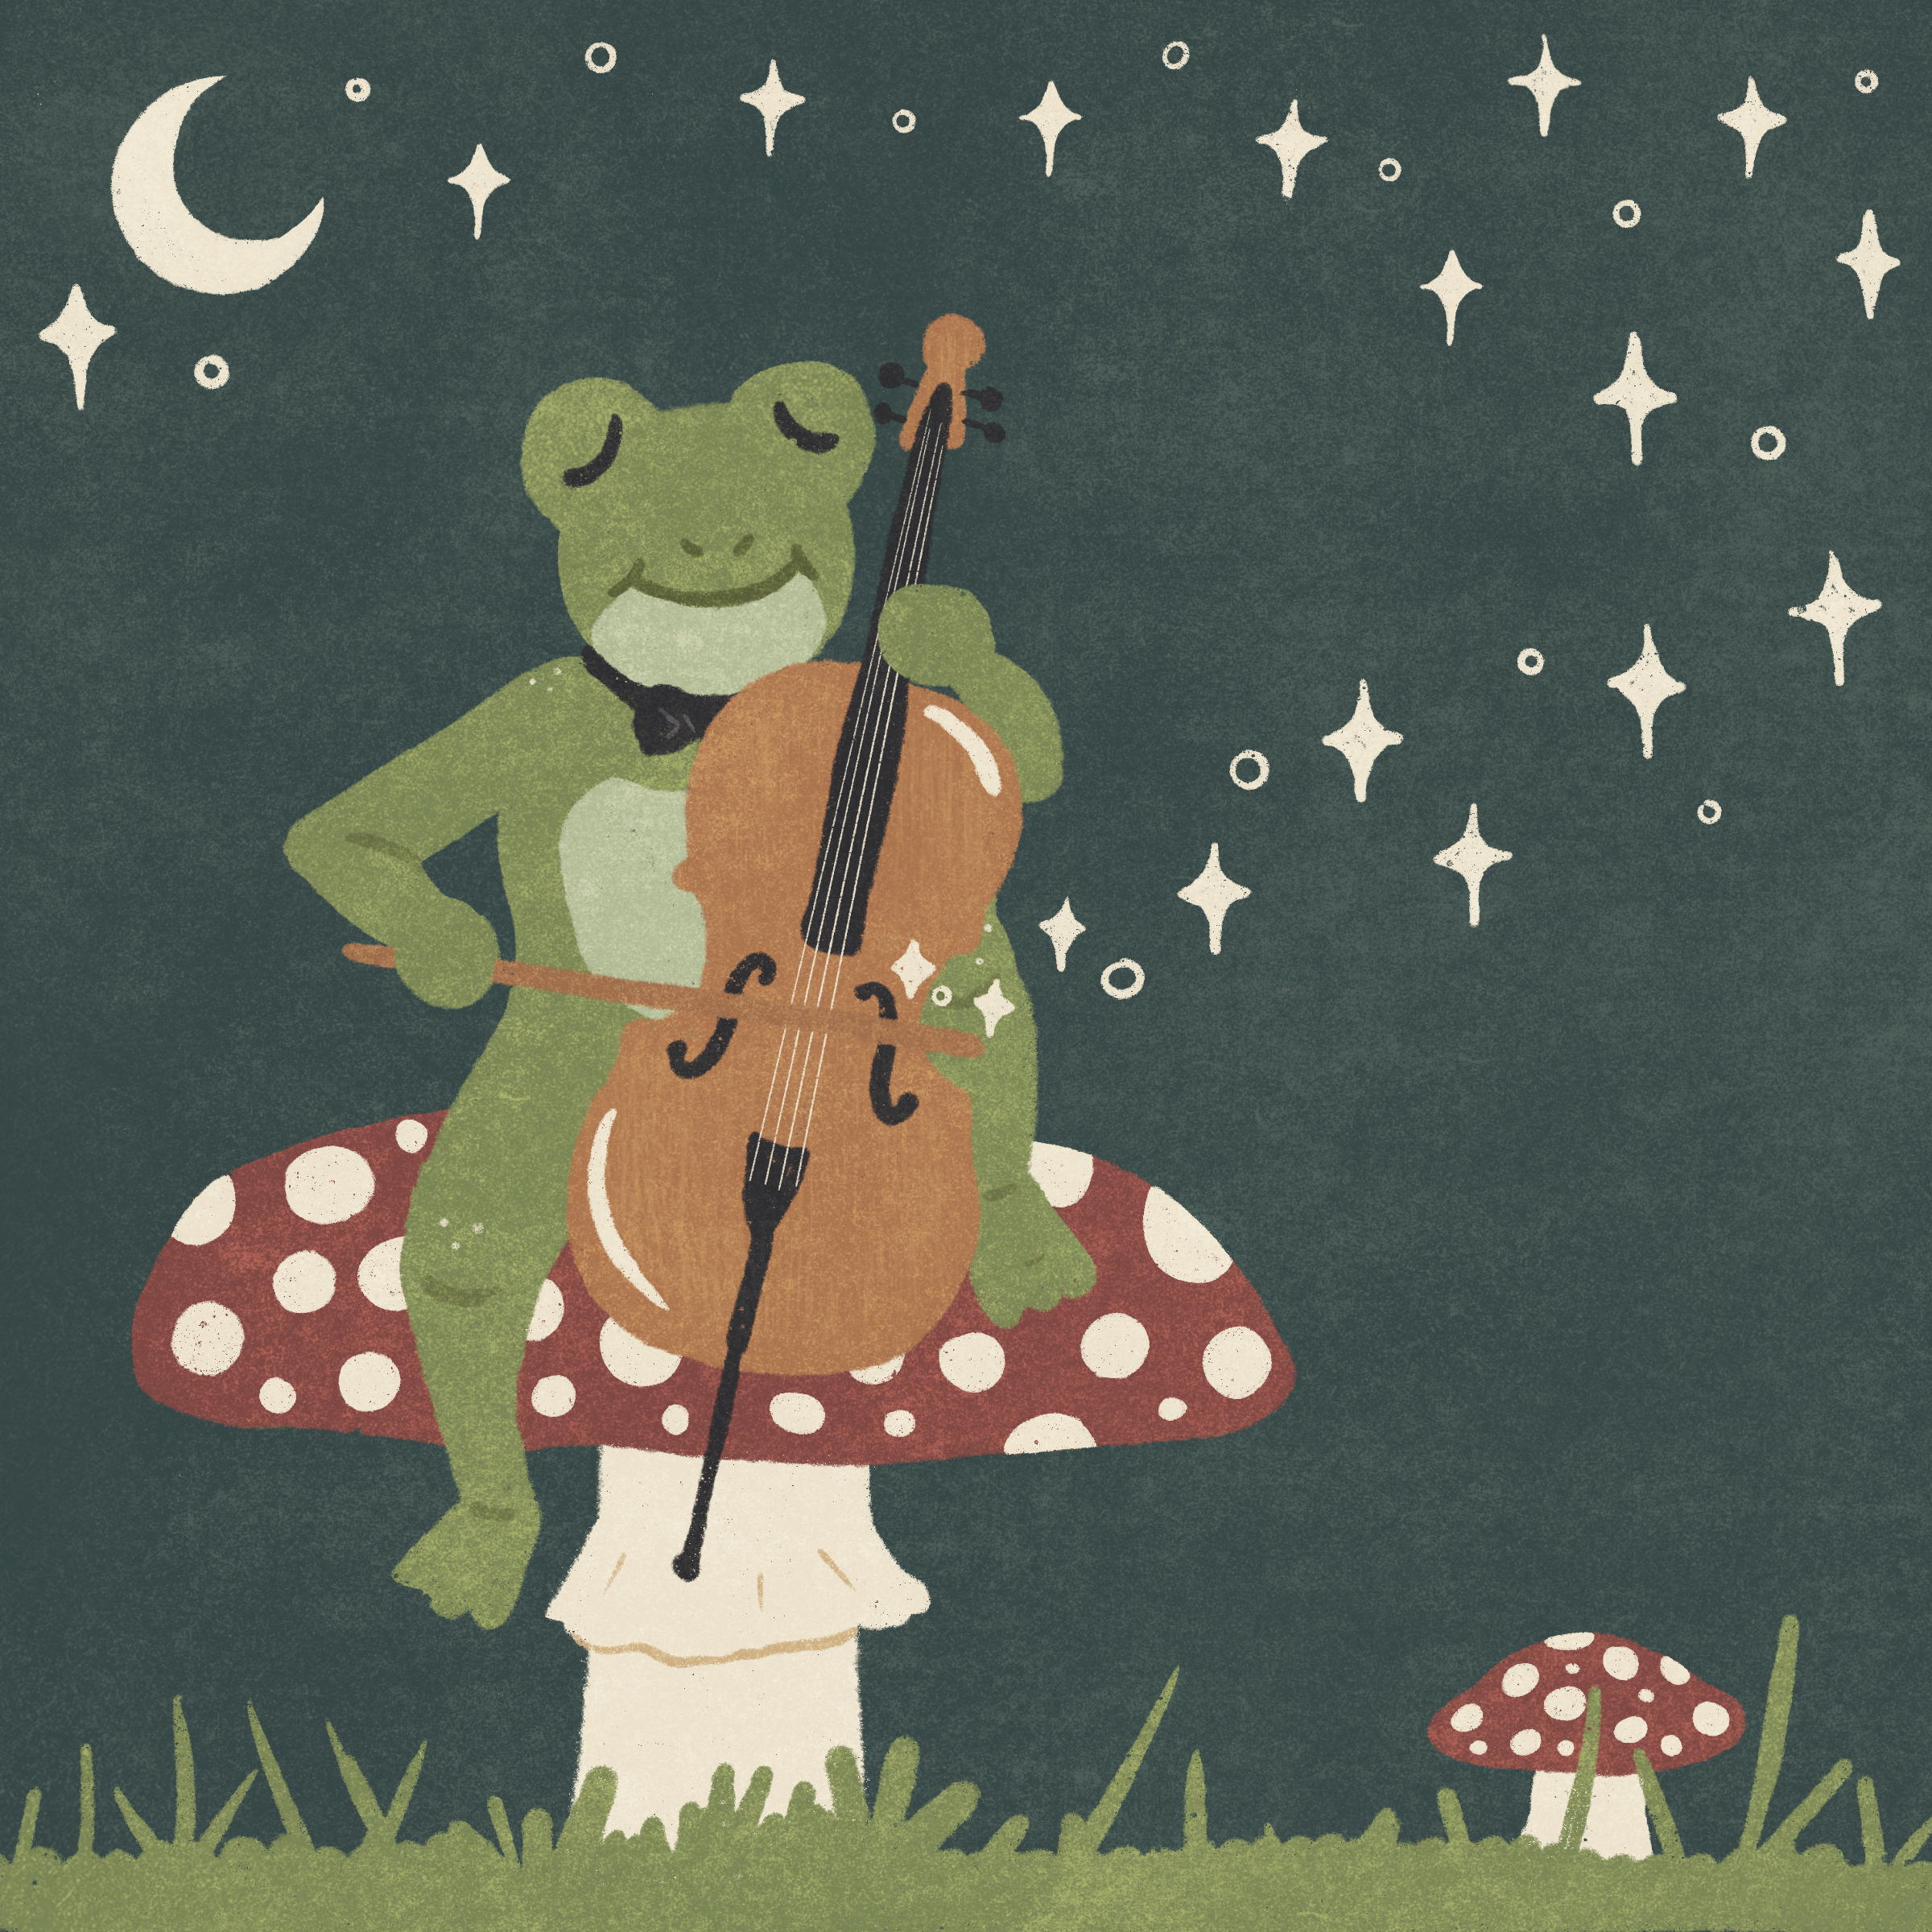 A digital drawing of an anthropomorphic frog wearing a bowtie sitting on a red and white toadstool playing a cello. Stars and sparkles are coming out of the cello and becoming stars in the sky above.